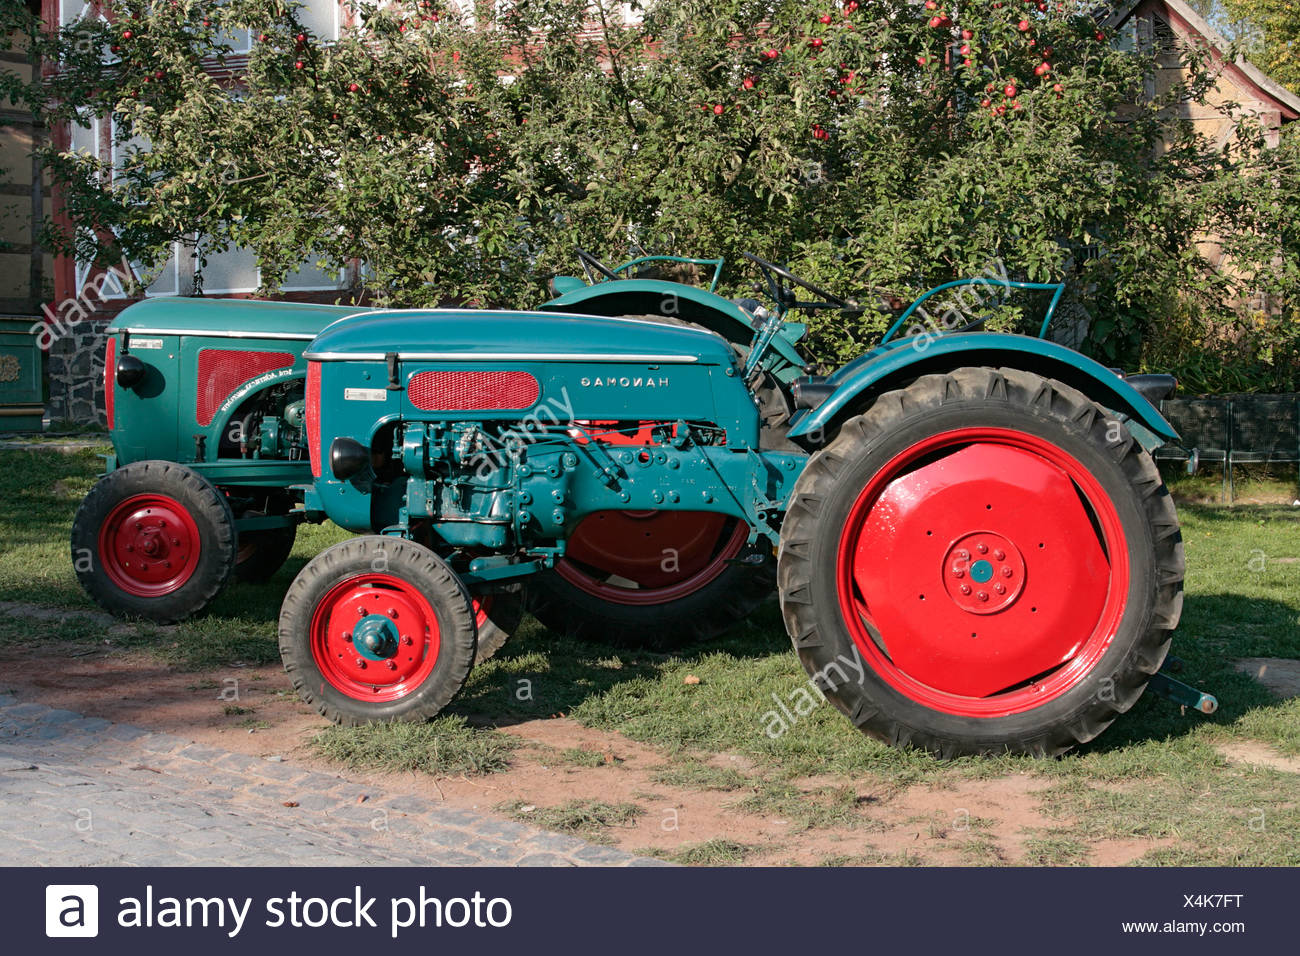 Vintage tractor, Hanomag, Treckertreff, Tractor Meet, in Hessenpark, Neu-Anspach, Hesse, Germany, Europe - Stock Image